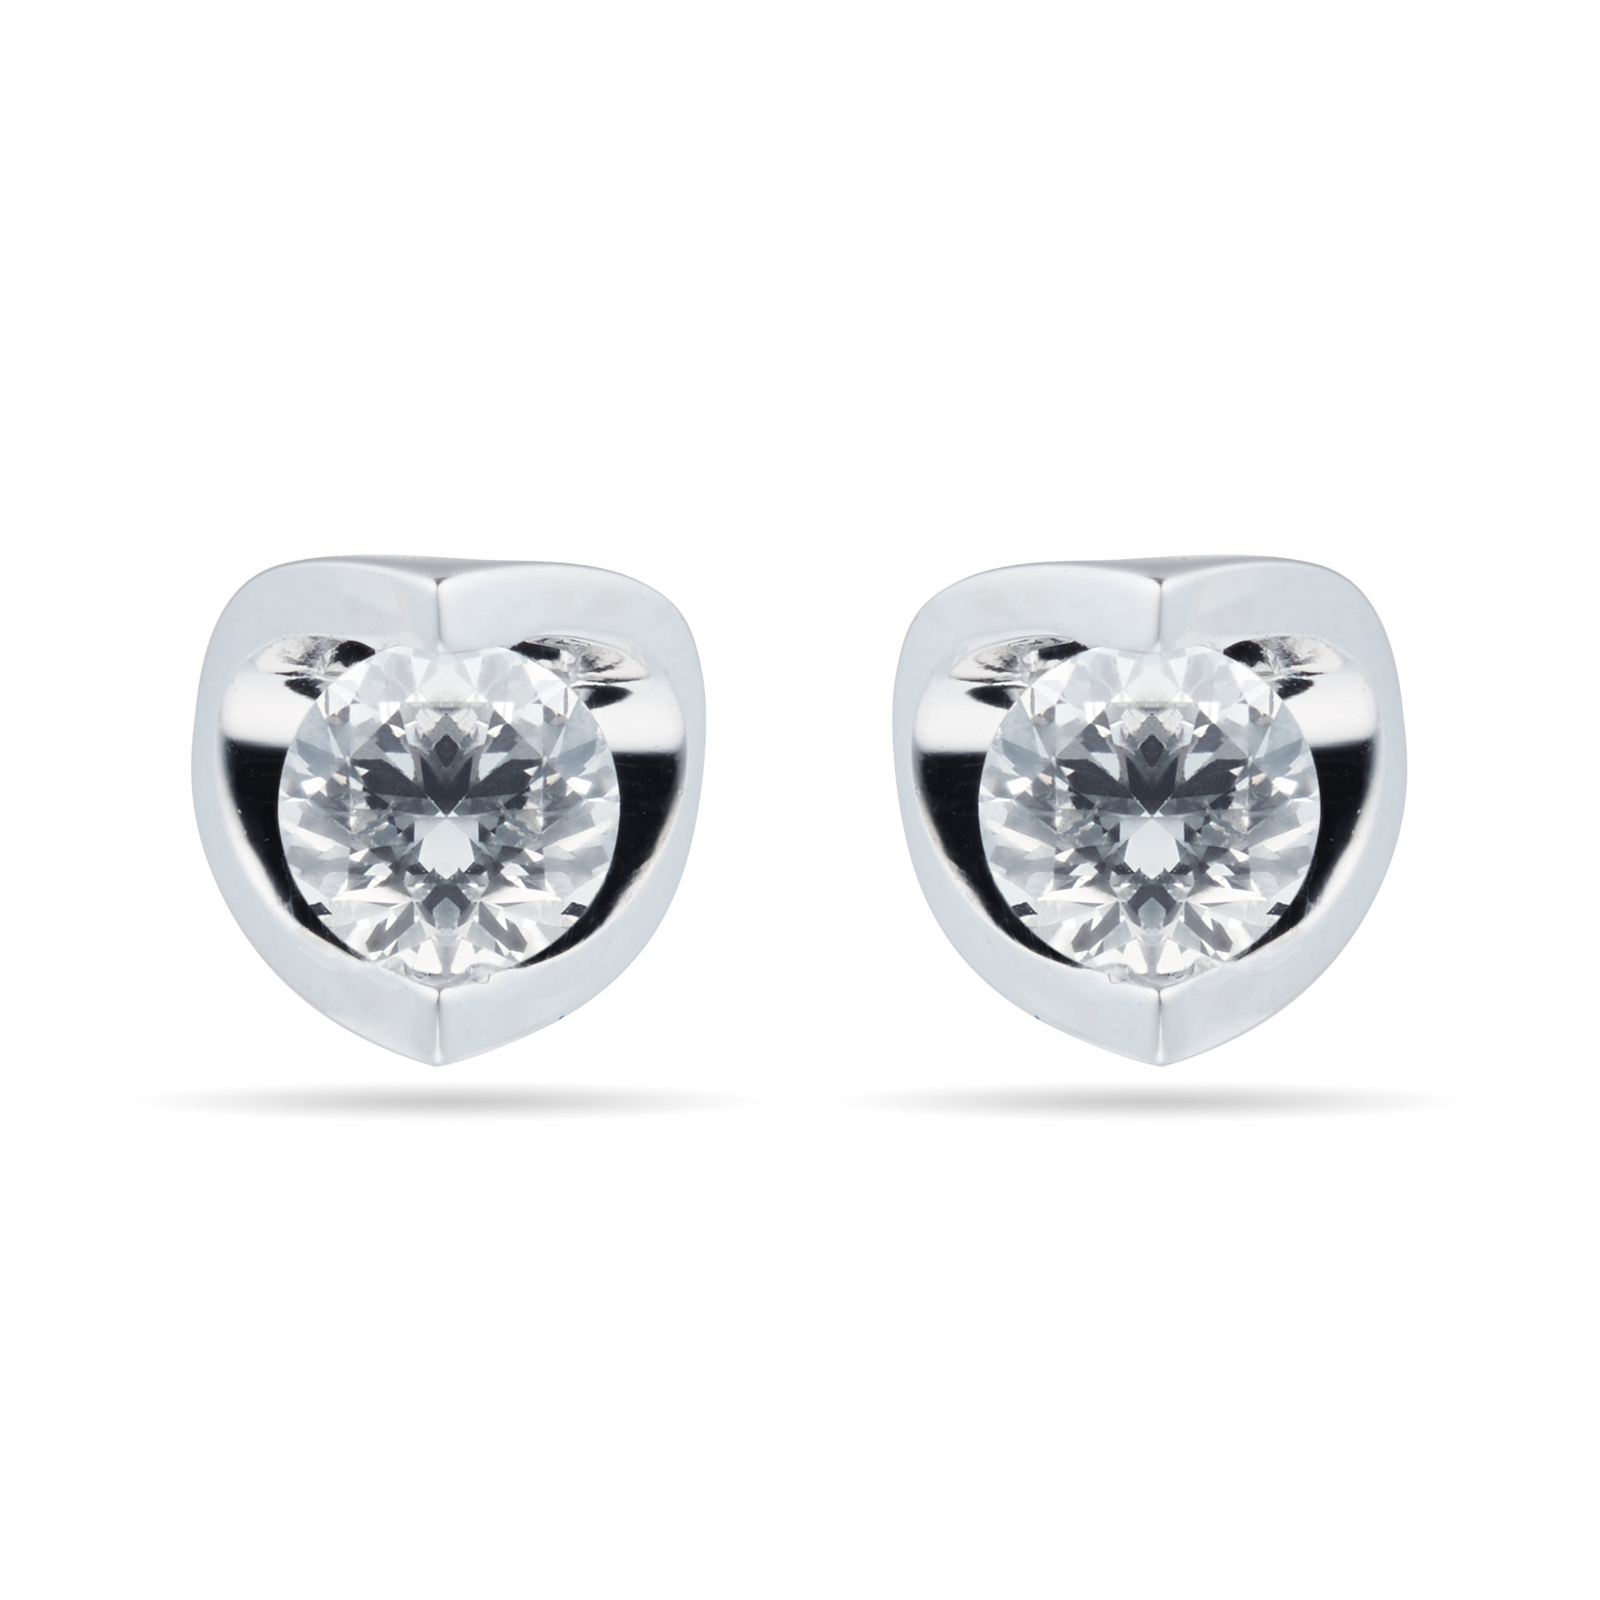 9ct White Gold 0.30ct Tension Set 88 Facet Diamond Earrings